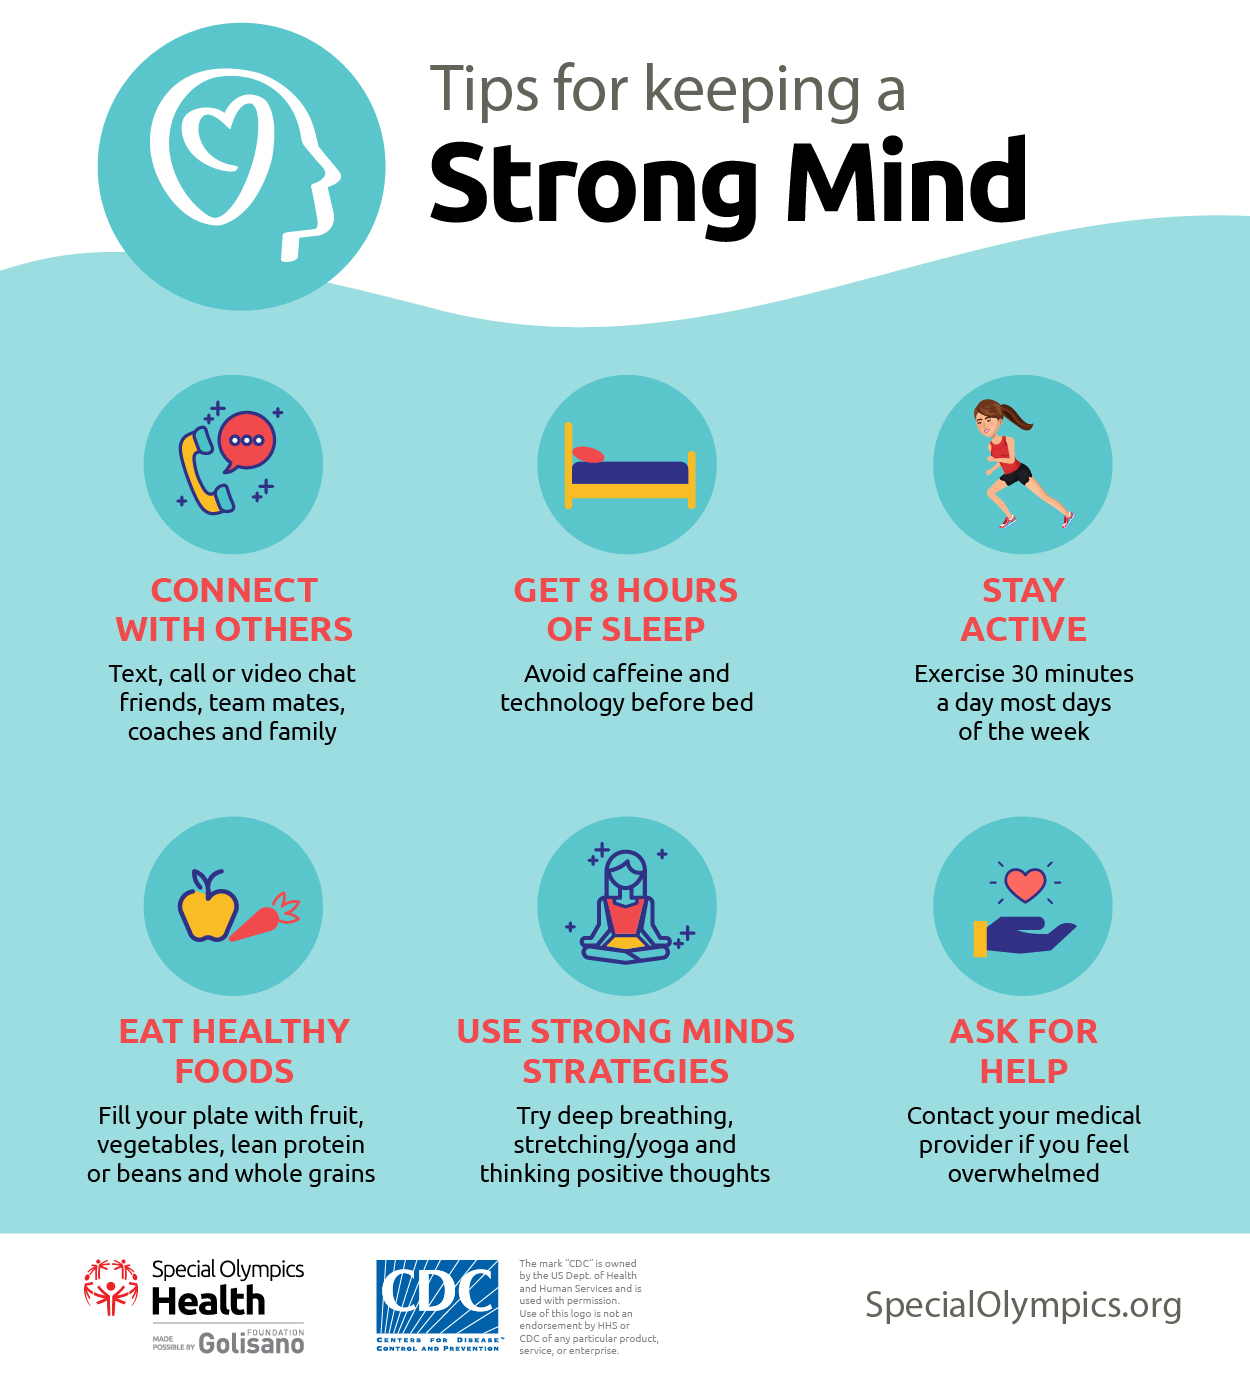 Tips for a keeping Strong Mind